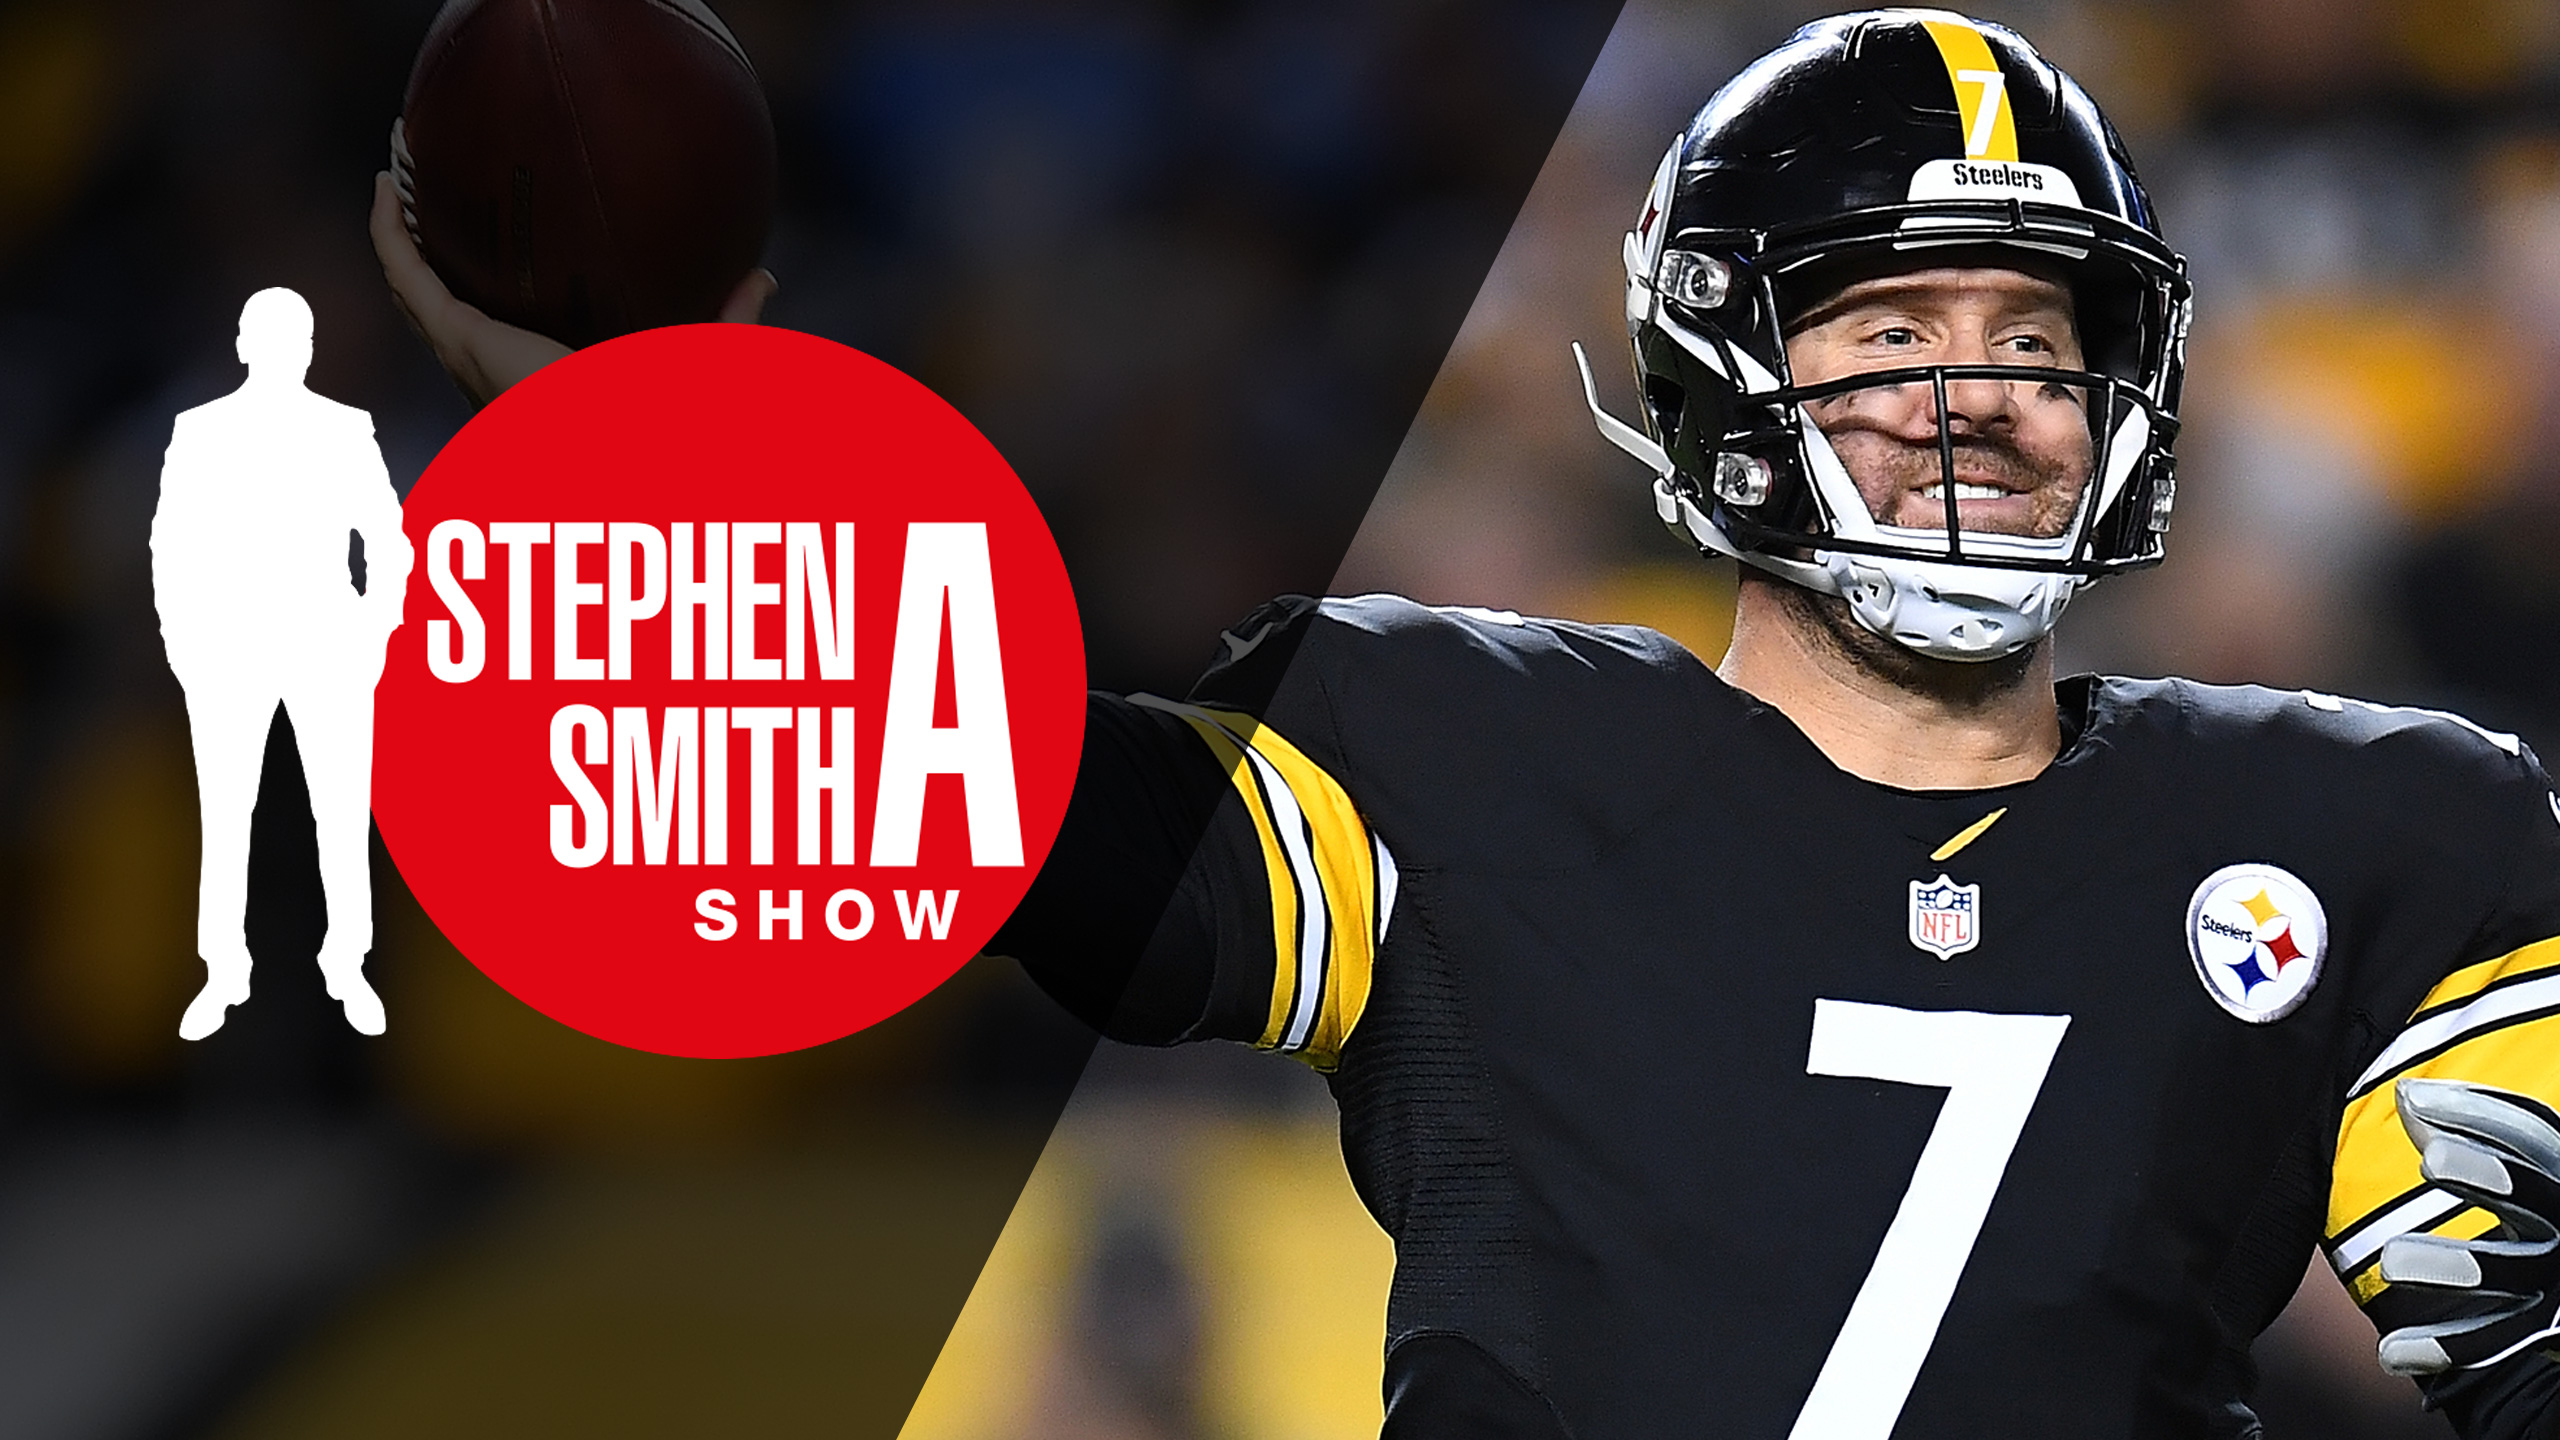 Fri, 12/14 - The Stephen A. Smith Show